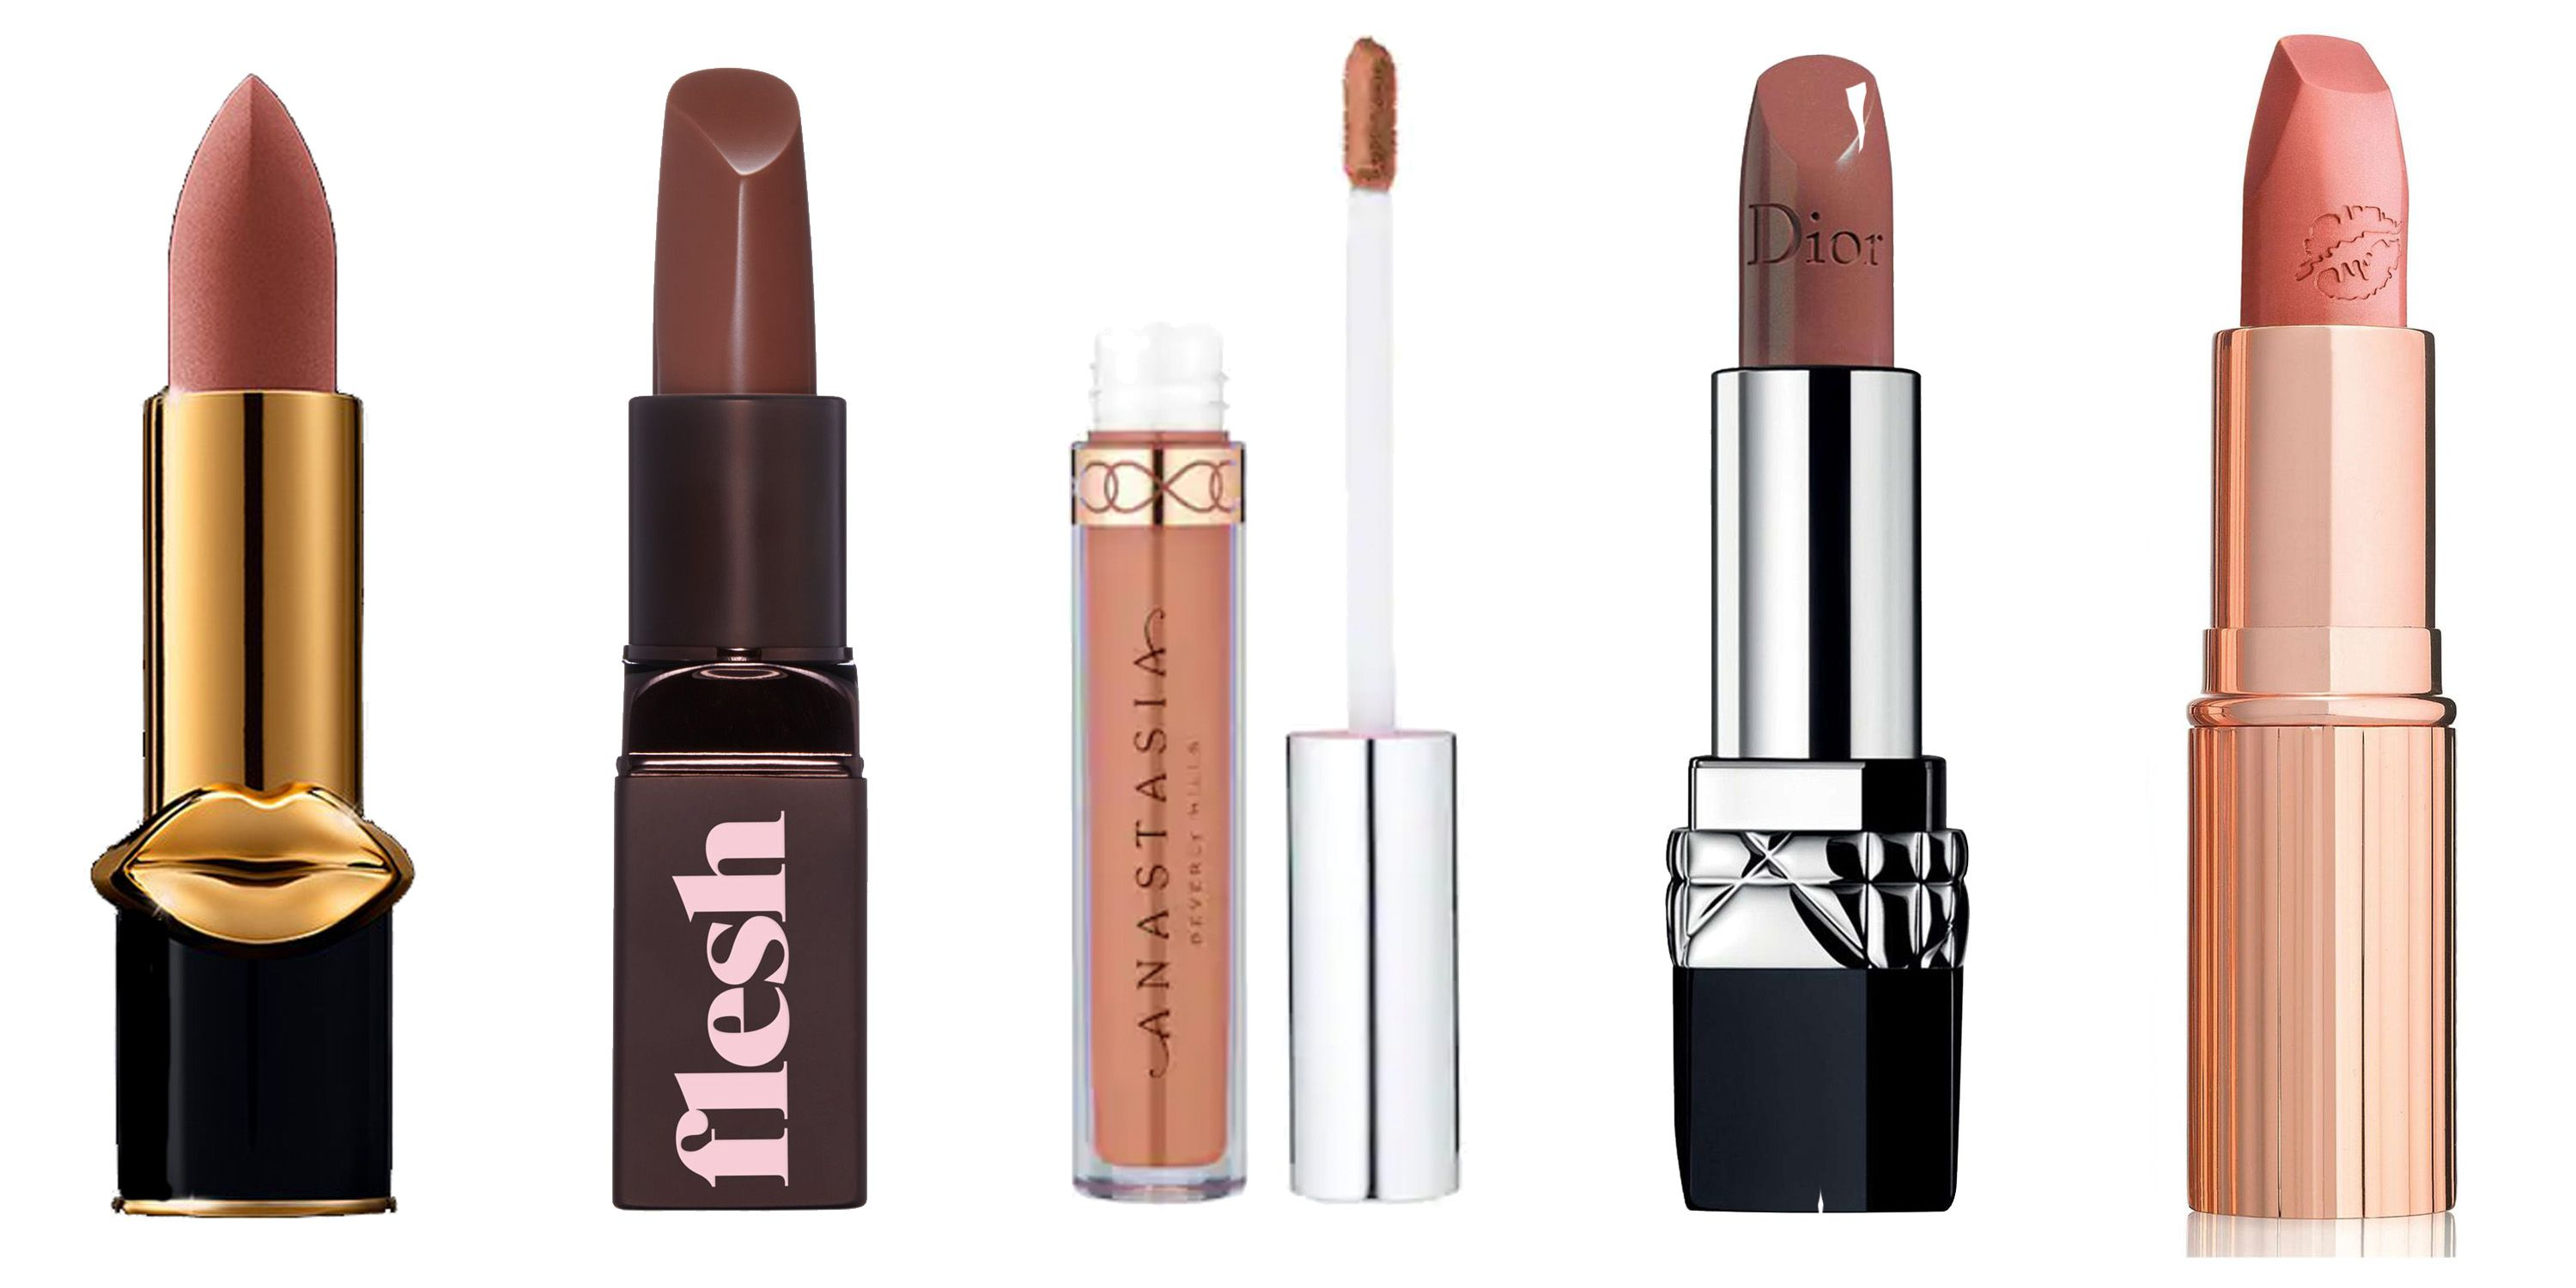 The 28 Nude Lipsticks Every Woman Should Own